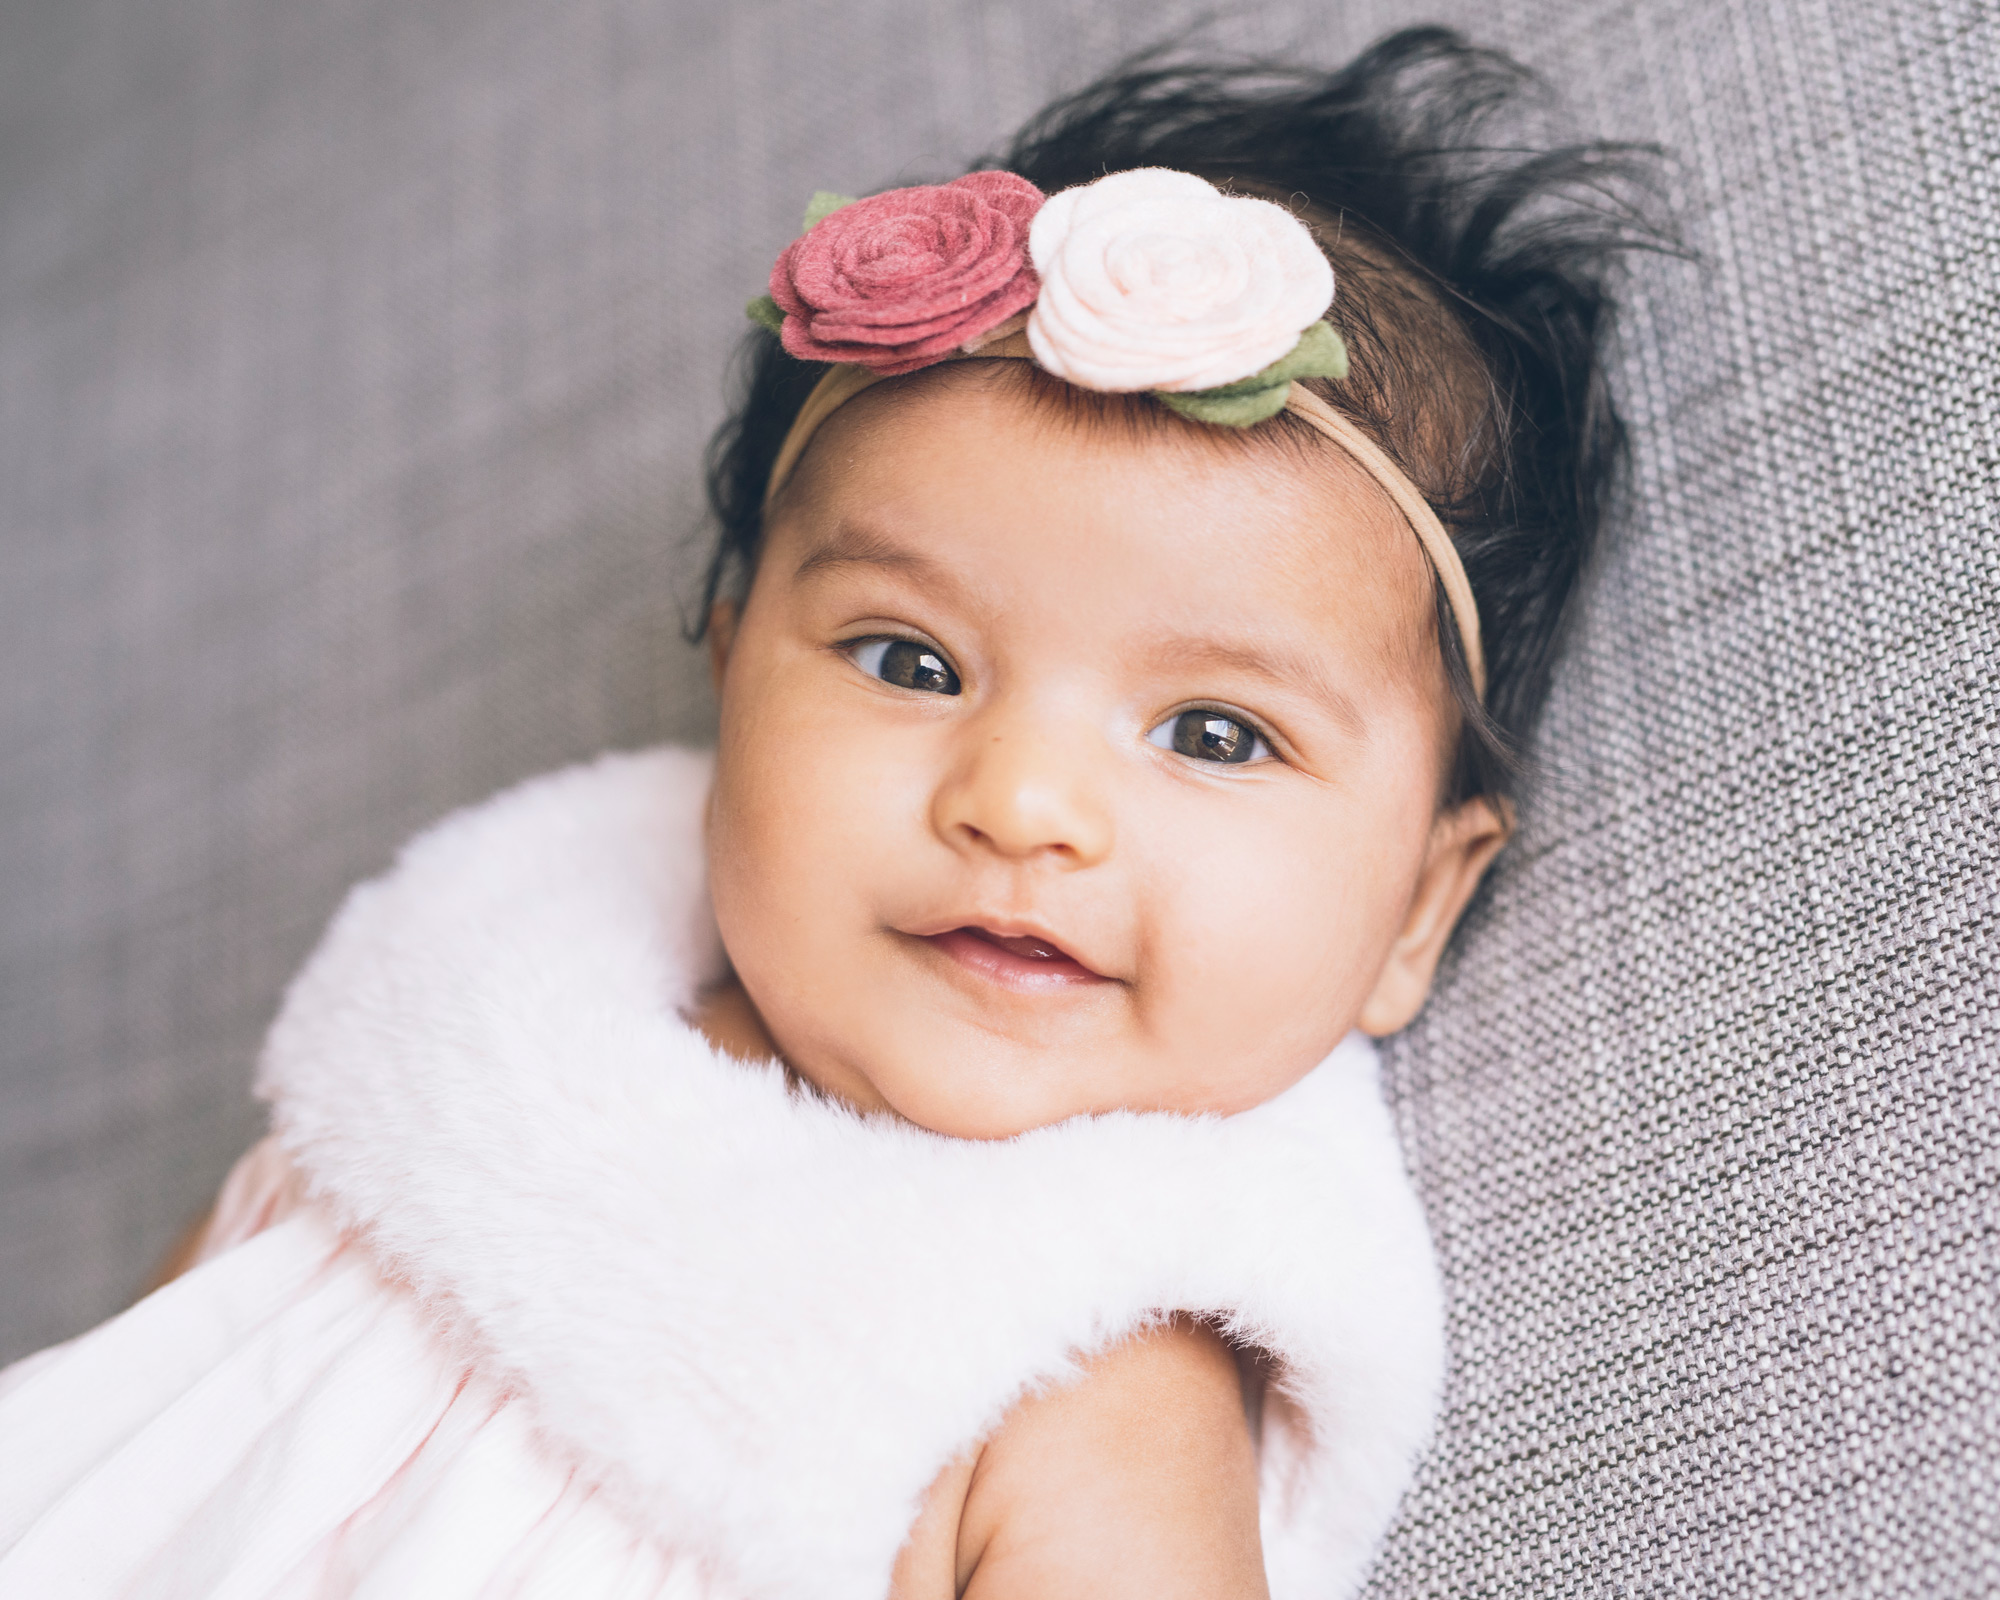 baby-girl-with-flower-headband-looking-at-the-camera.jpg